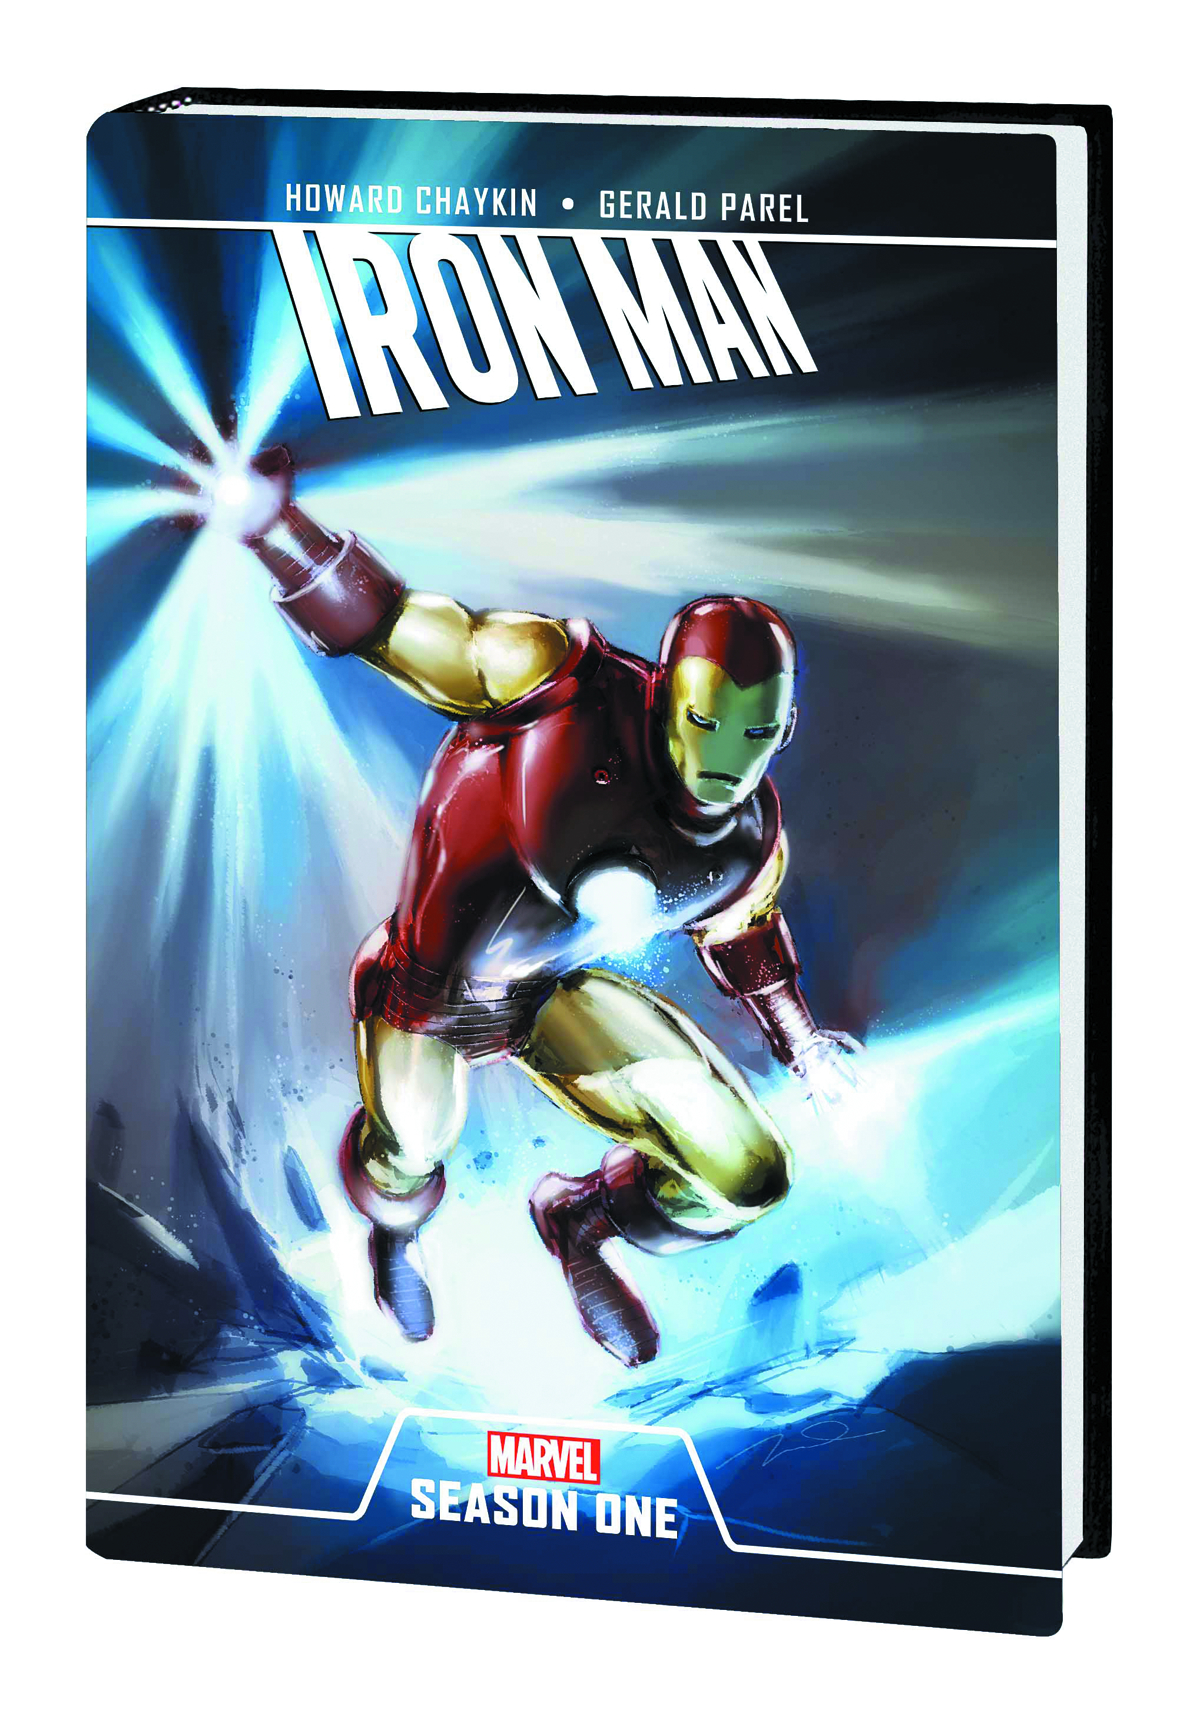 IRON MAN SEASON ONE PREM HC